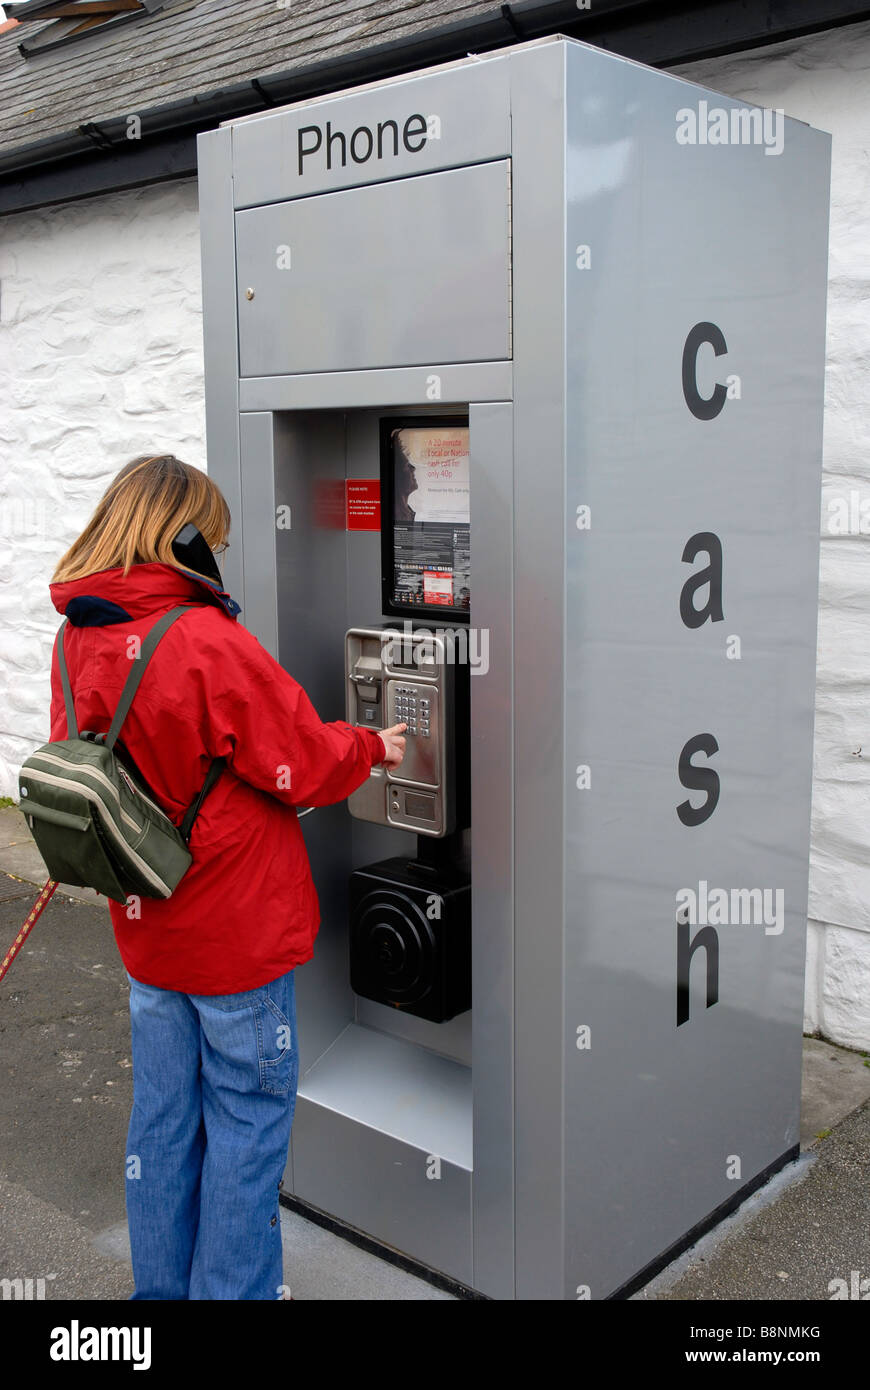 Combined Cash and pay phone machine - Stock Image